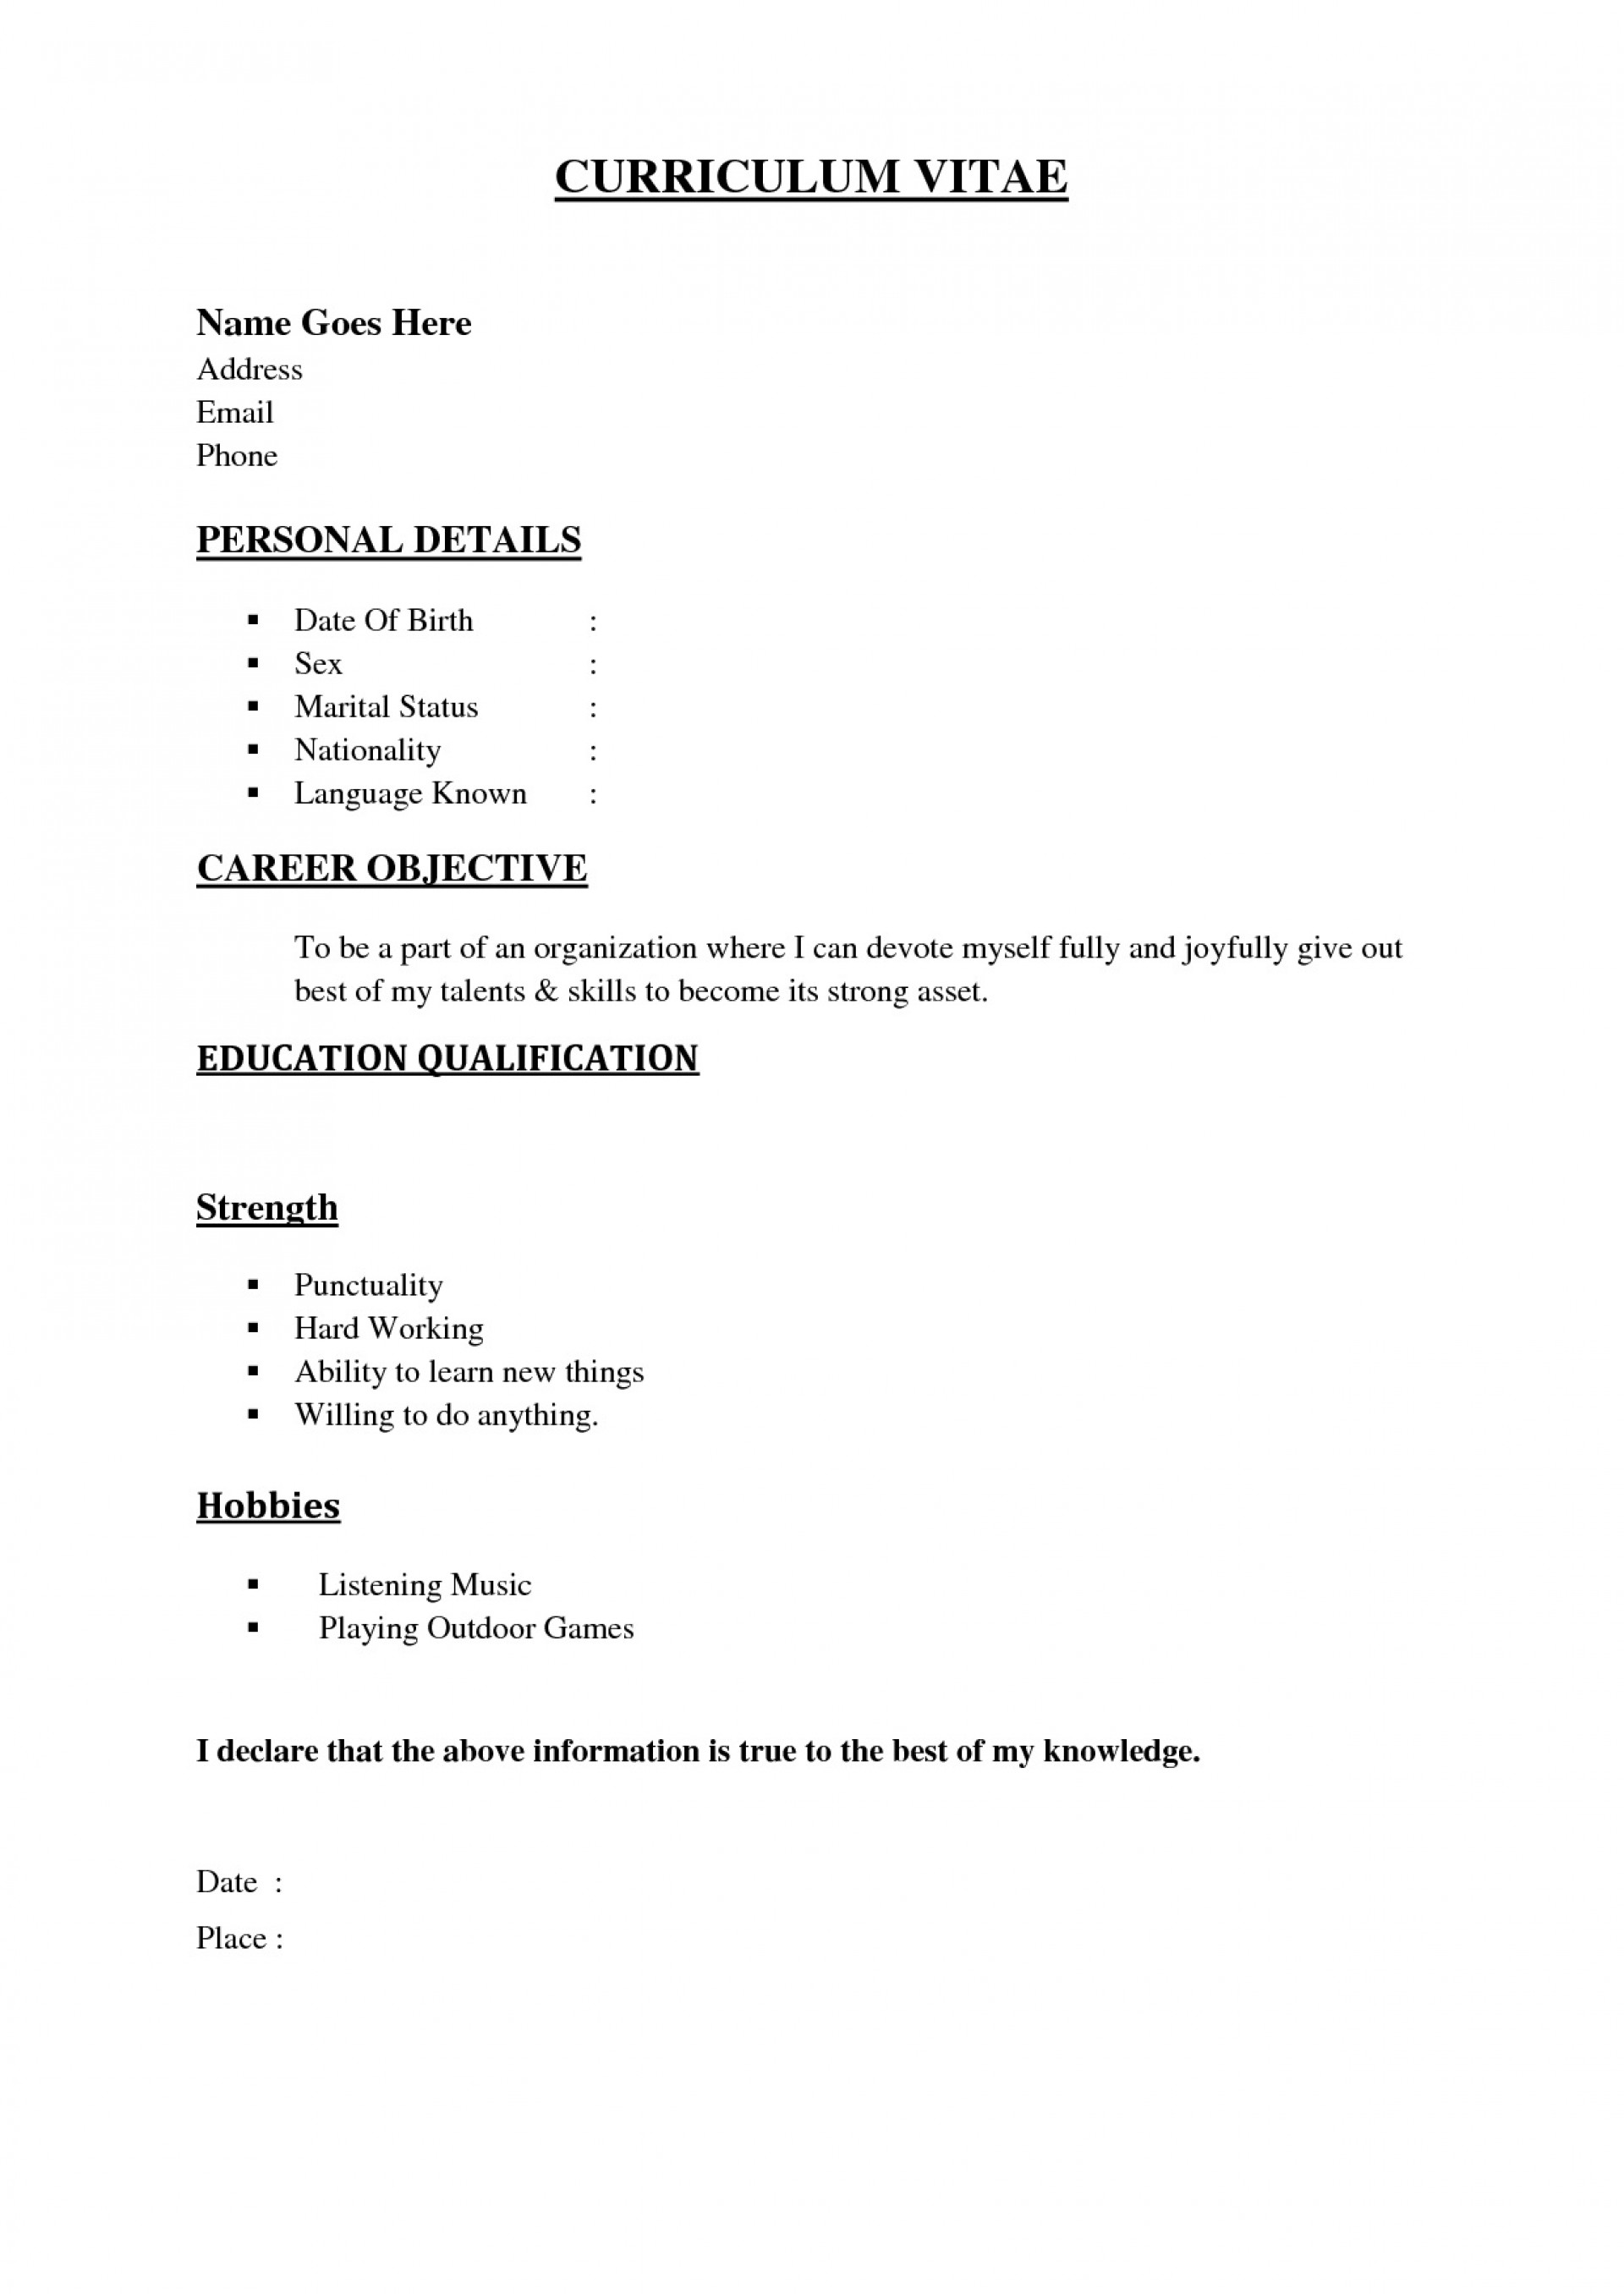 001 Formidable Simple Job Resume Template Idea  Download First1920